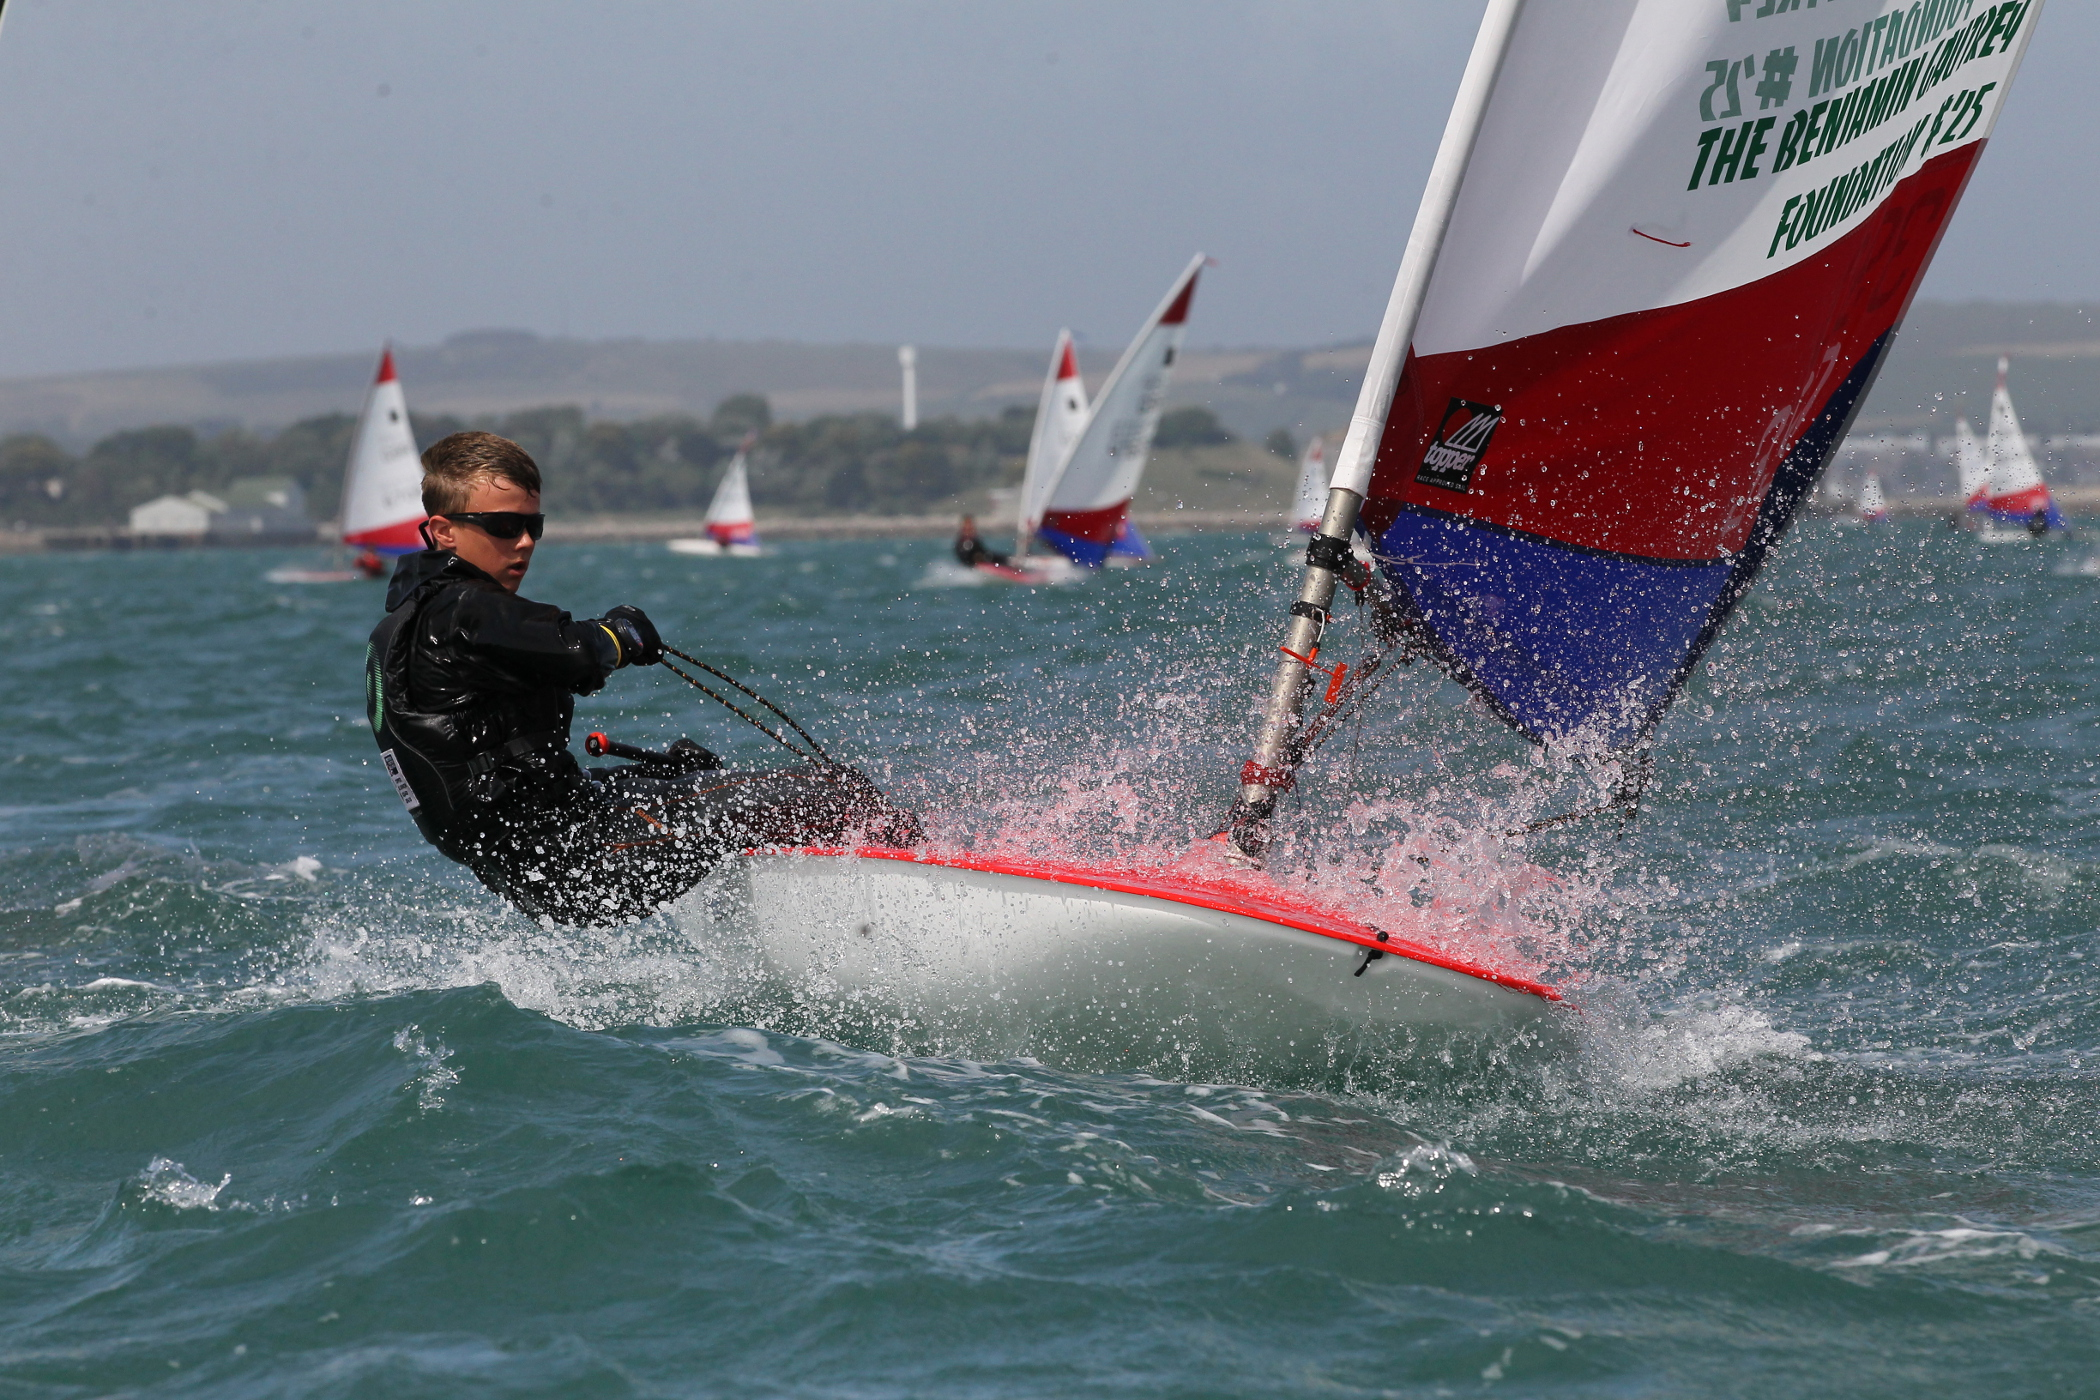 Sailor Sam is making waves in yachting world